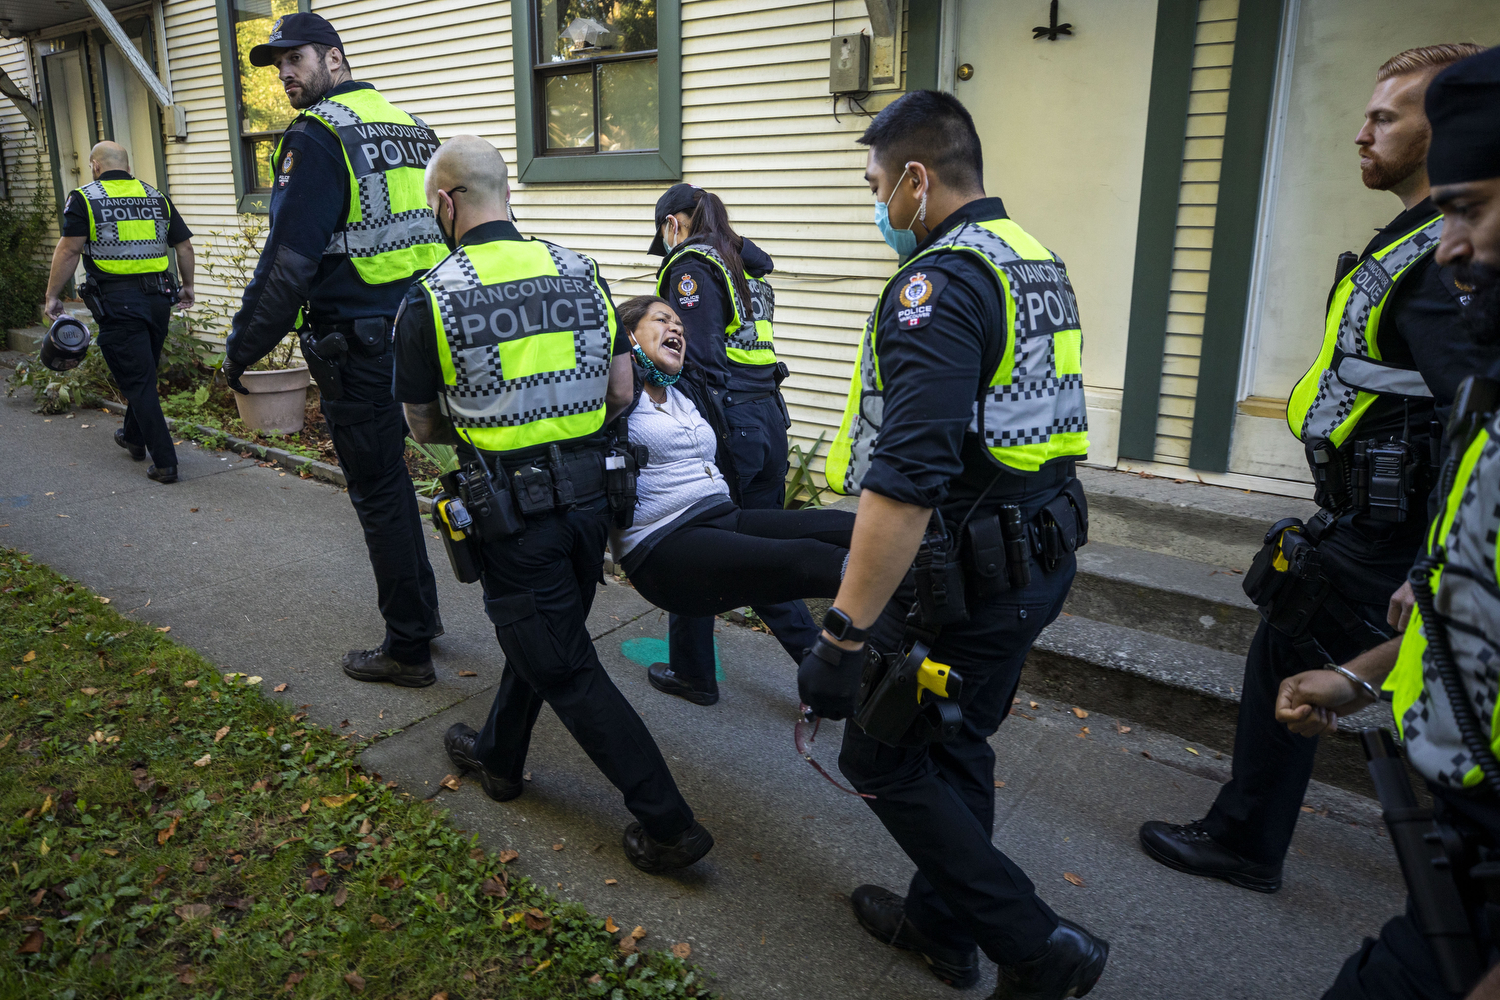 Activist Chrissy Brett is arrested during a housing-for-all protest near the tent emcampment she oversees in Strathcona Park in Vancouver on Sept. 28, 2020.  (Ben Nelms/CBC Vancouver)